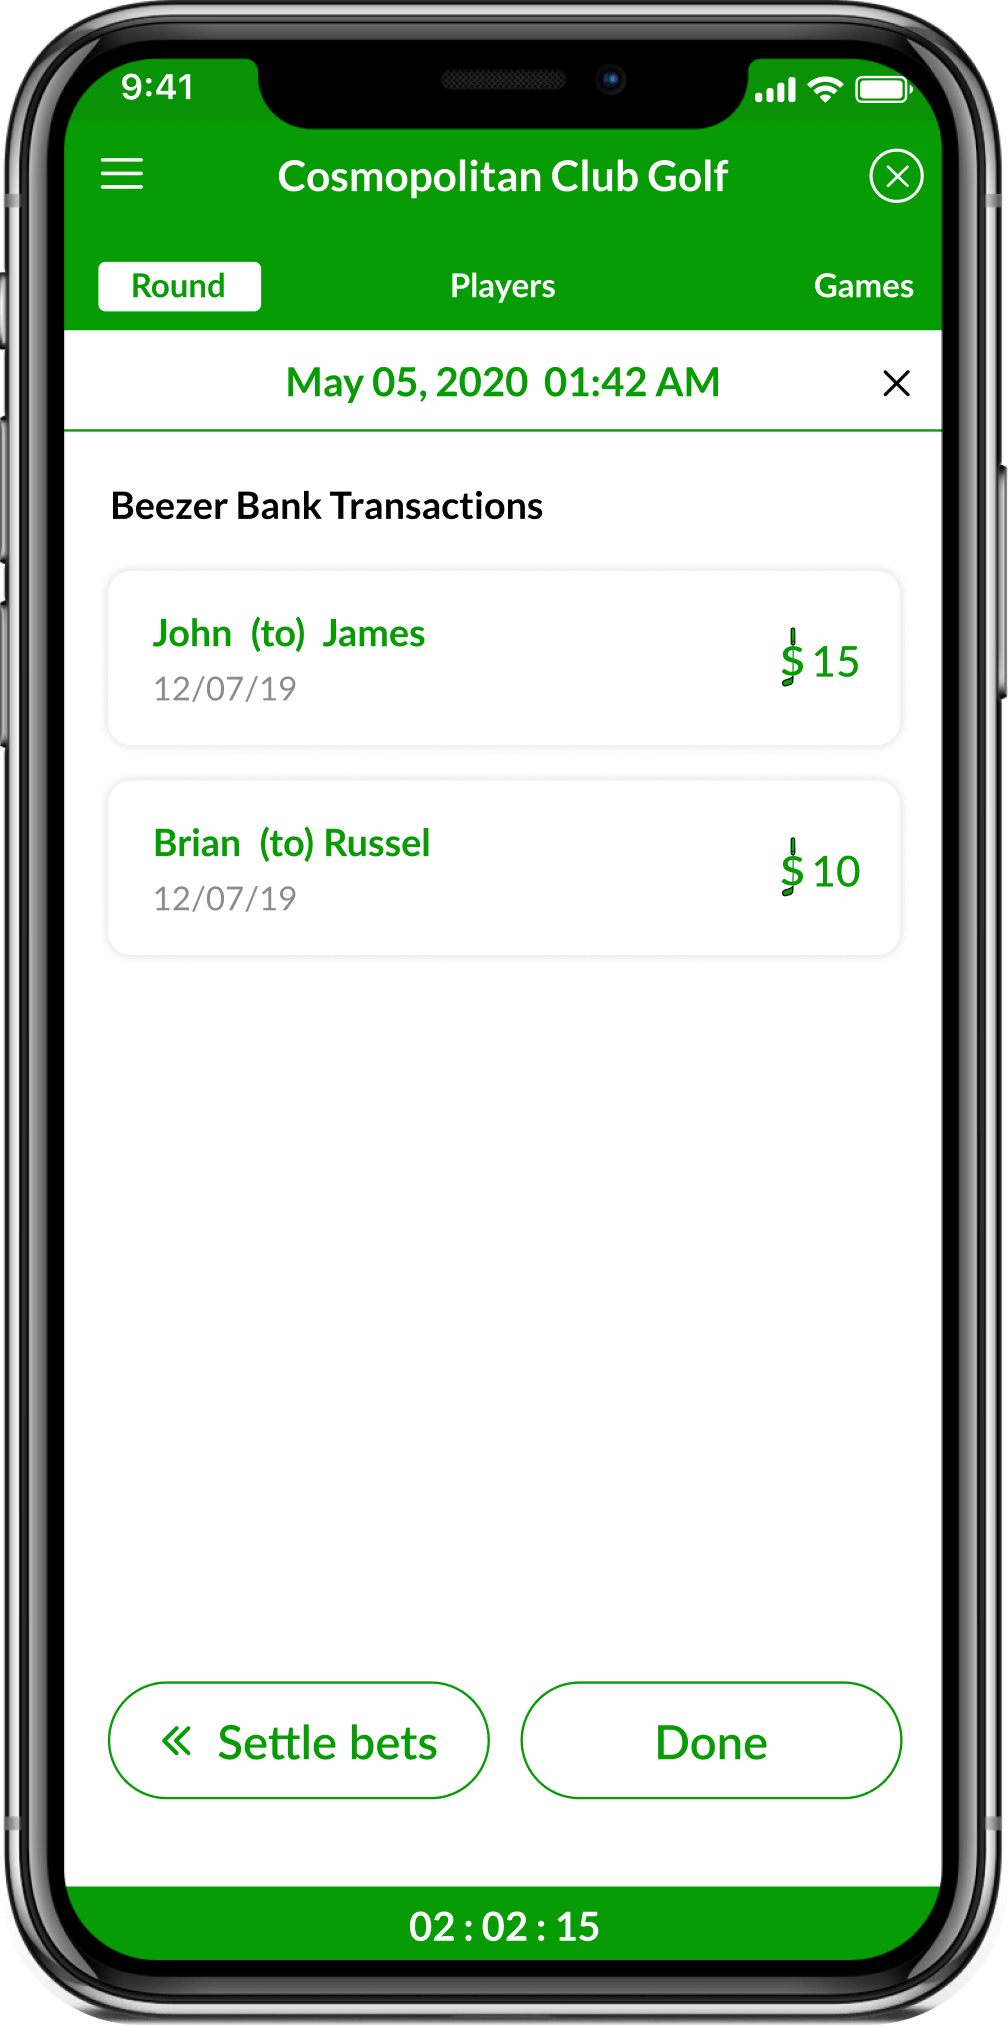 Golf Bets Tracking App screenshot showing the Round Bets